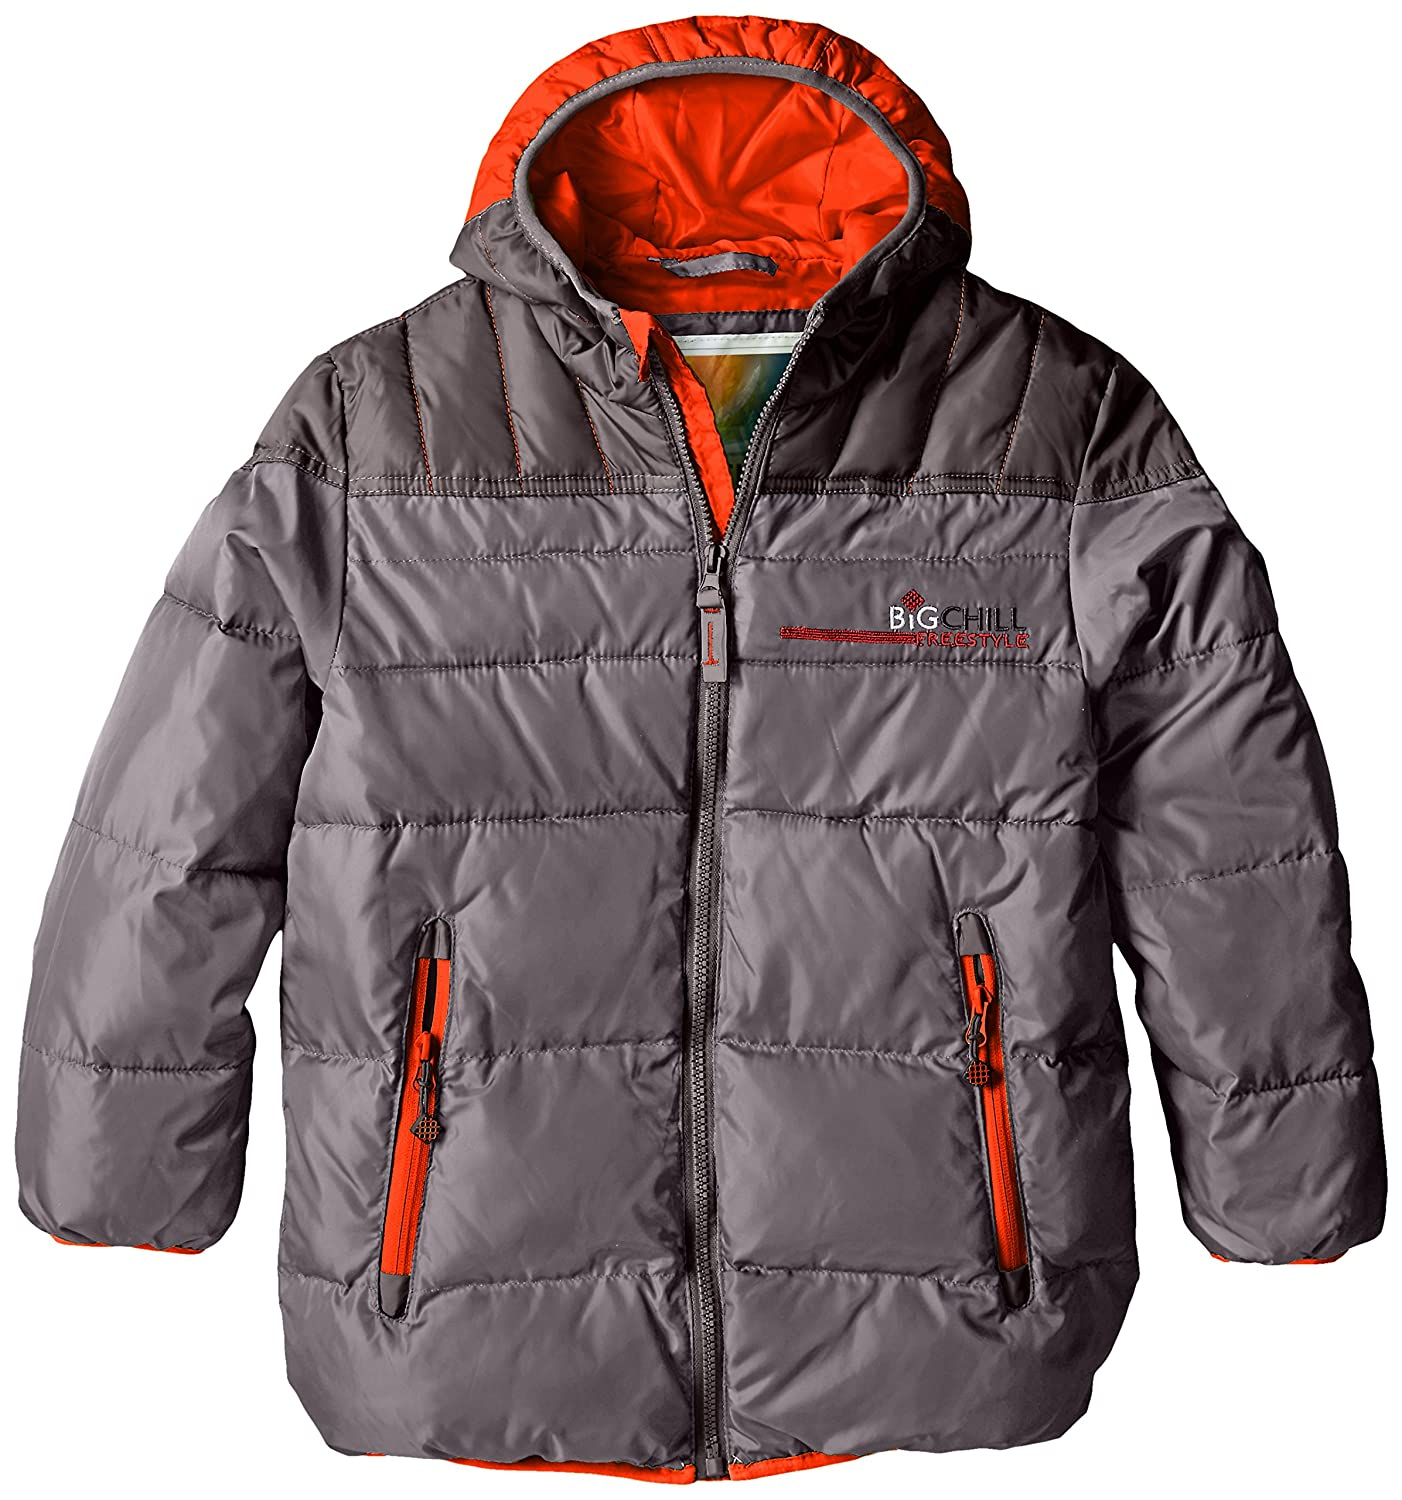 d05e3b6a8a74 Amazon.com  Big Chill Boys  Puffer Jacket with Down Fill  Clothing